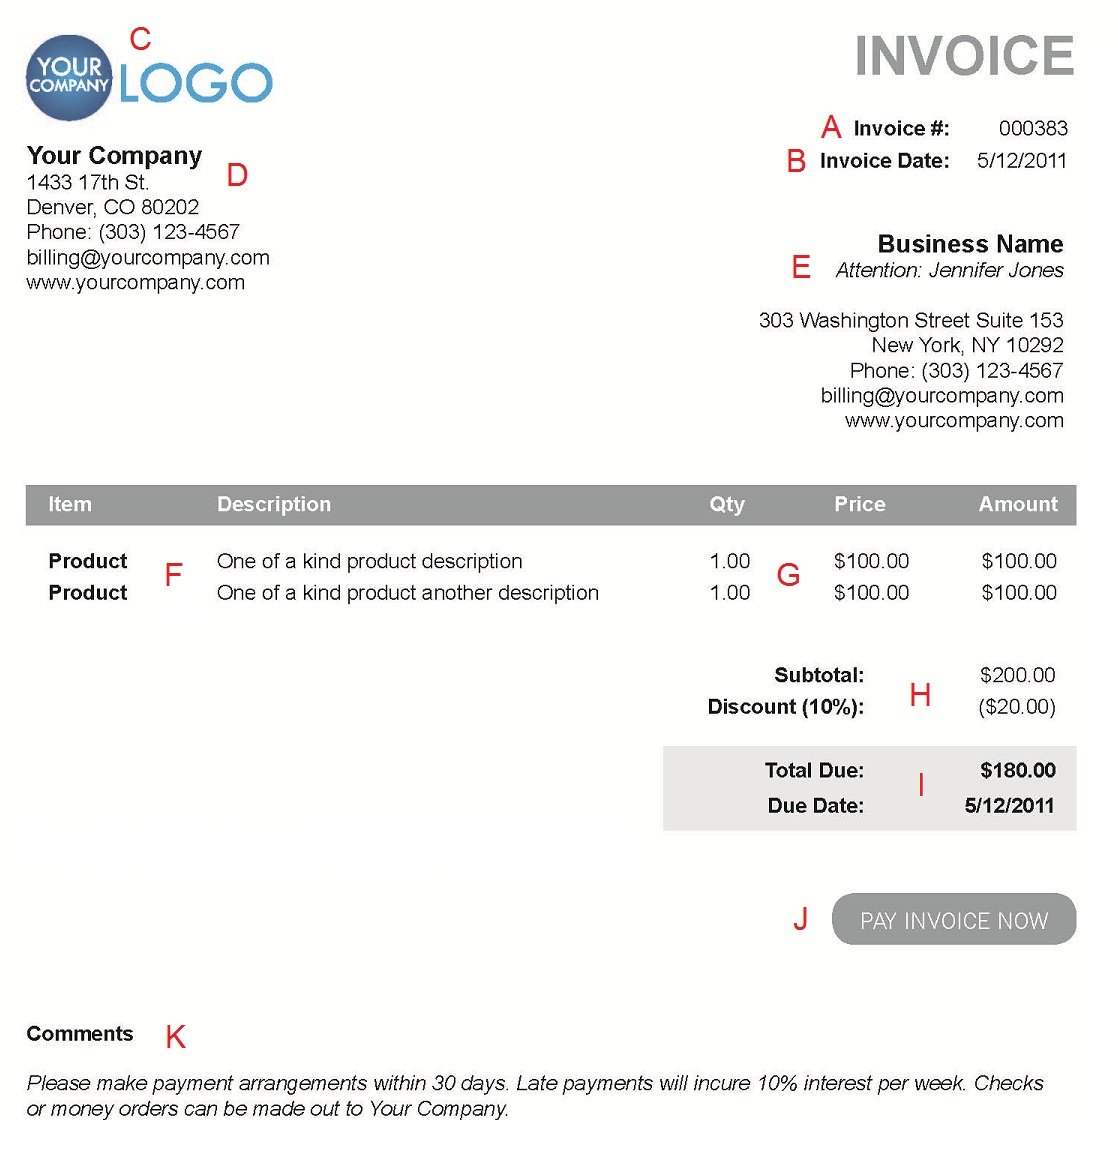 Coolmathgamesus  Winning The  Different Sections Of An Electronic Payment Invoice With Entrancing A  With Endearing Can I Return An Item Without A Receipt Also Money Order Receipts In Addition Slow Cooker Receipt And Color Receipt Printer As Well As Business Receipt Templates Additionally Cash Received Receipt From Paysimplecom With Coolmathgamesus  Entrancing The  Different Sections Of An Electronic Payment Invoice With Endearing A  And Winning Can I Return An Item Without A Receipt Also Money Order Receipts In Addition Slow Cooker Receipt From Paysimplecom